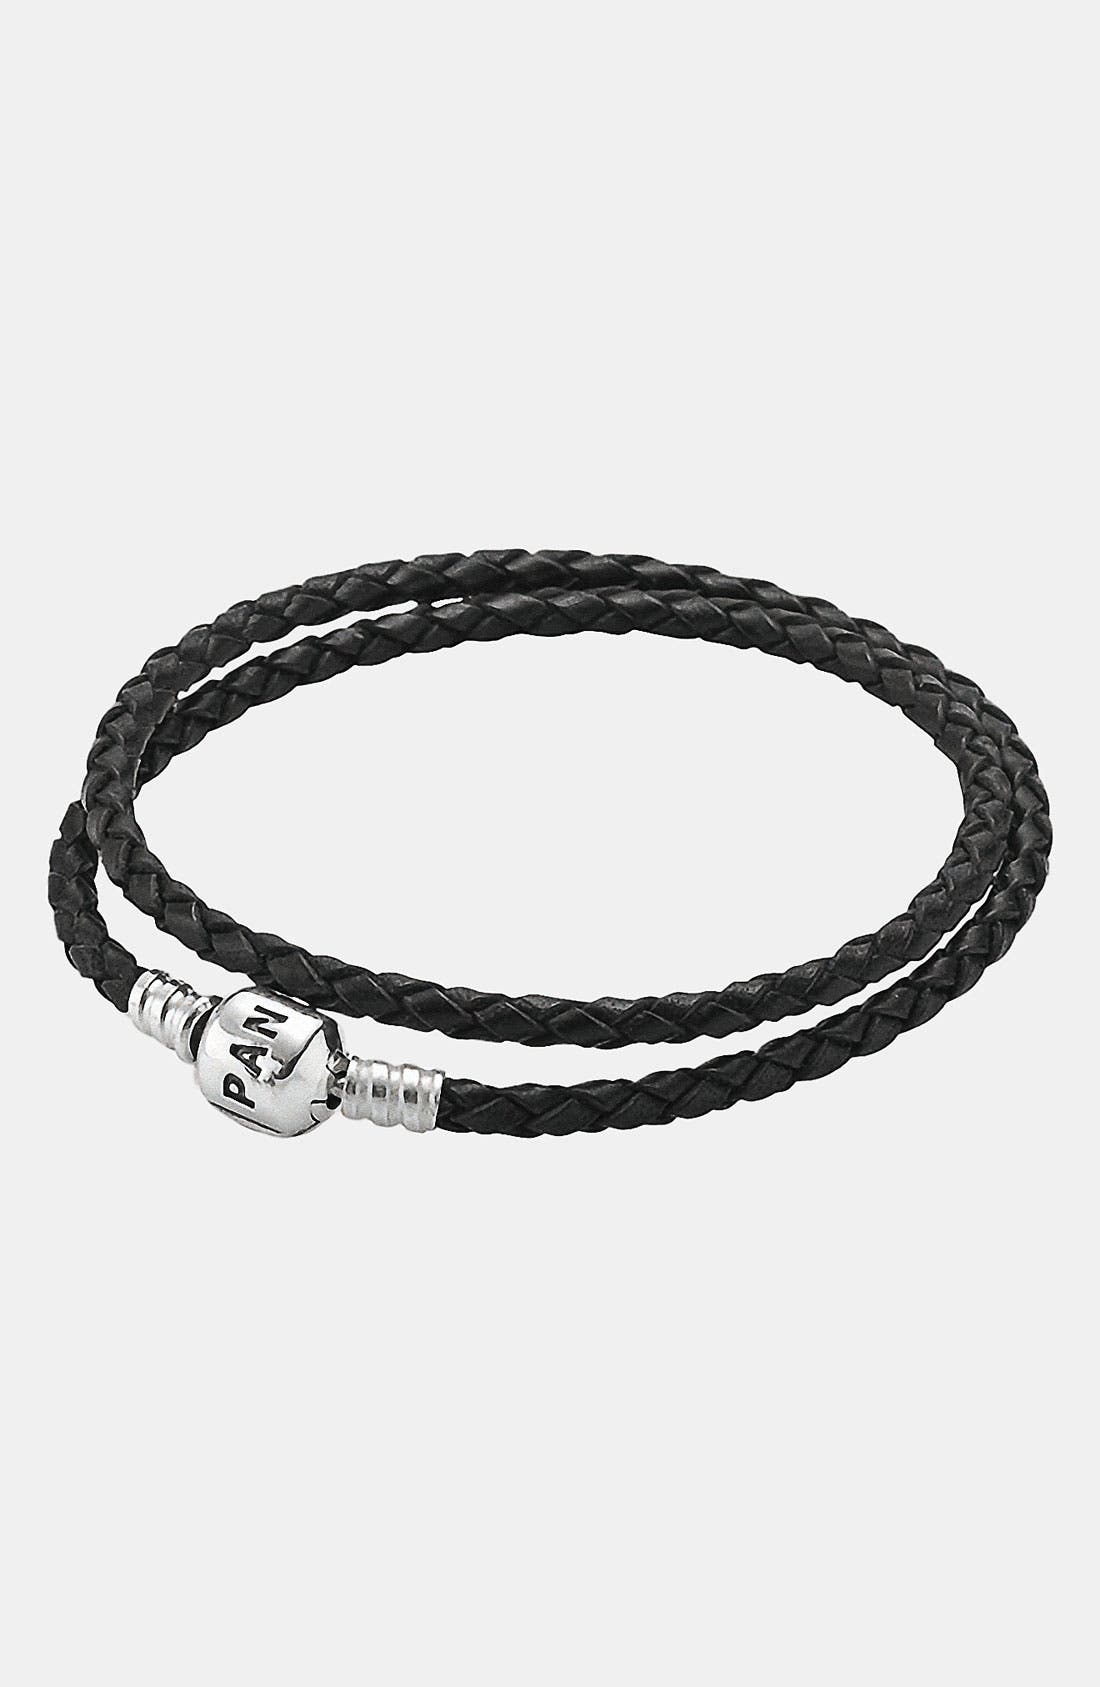 Alternate Image 1 Selected - PANDORA Leather Wrap Charm Bracelet